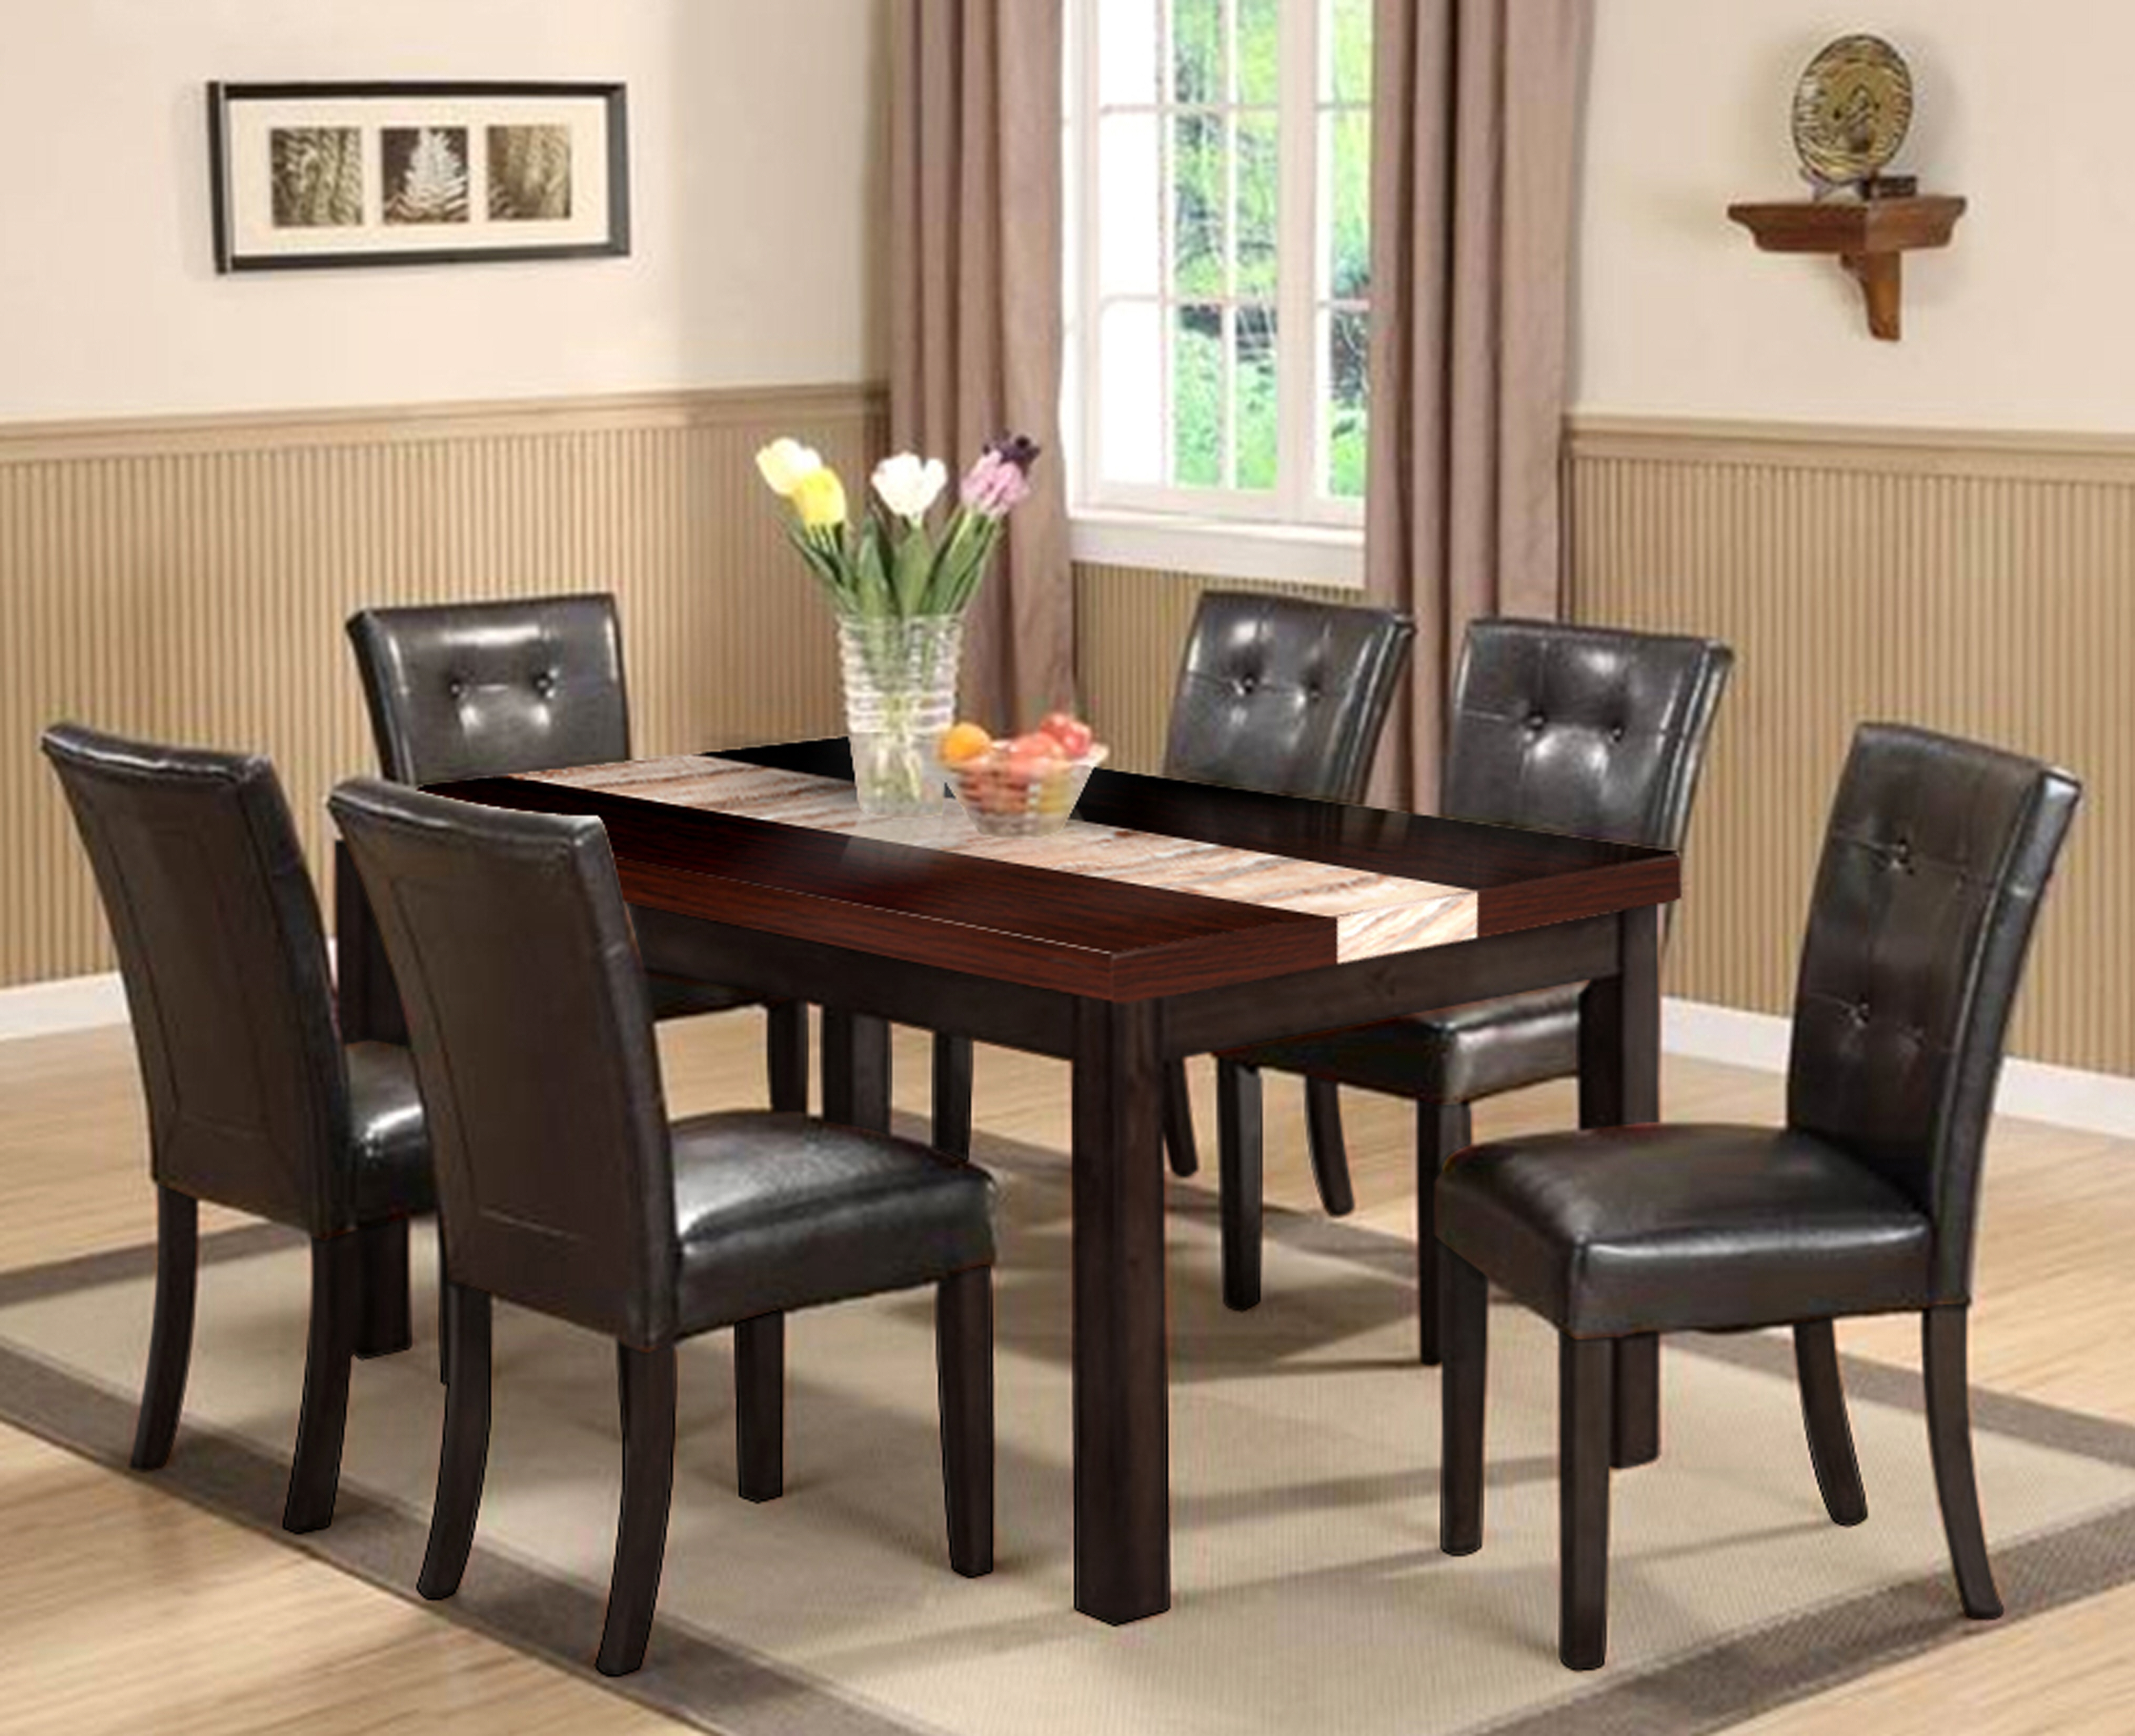 Fabulous Cracked Glass Dining Room Table 4058 x 3300 · 2566 kB · jpeg